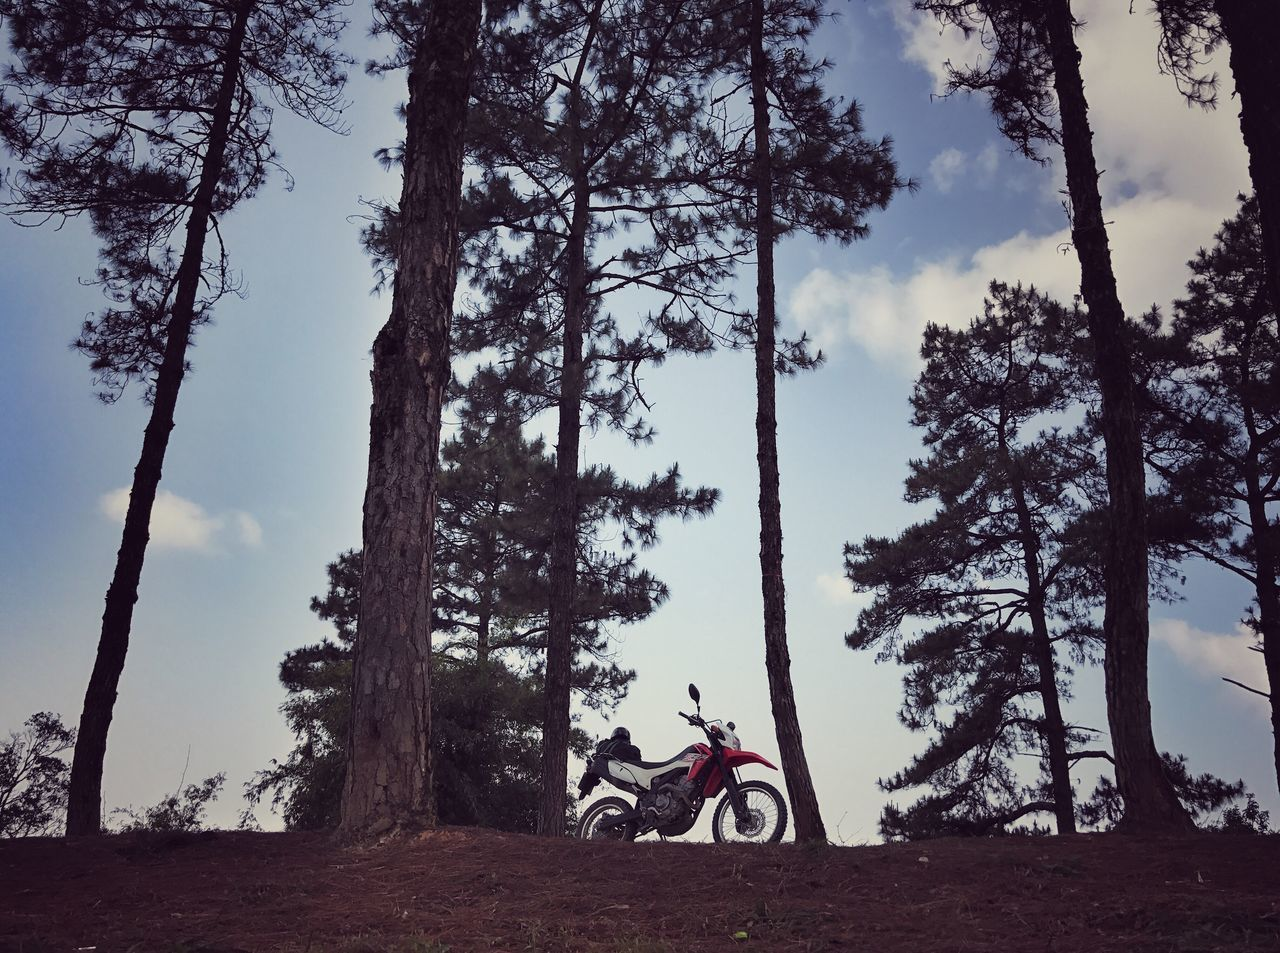 Alone in National Park Tree Riding Transportation Sky One Person Outdoors Full Length Real People Nature Day People Pine Tree Motocross Enduro No People National Park Biker Motorcycle Land Vehicle Speed Thailand Northern